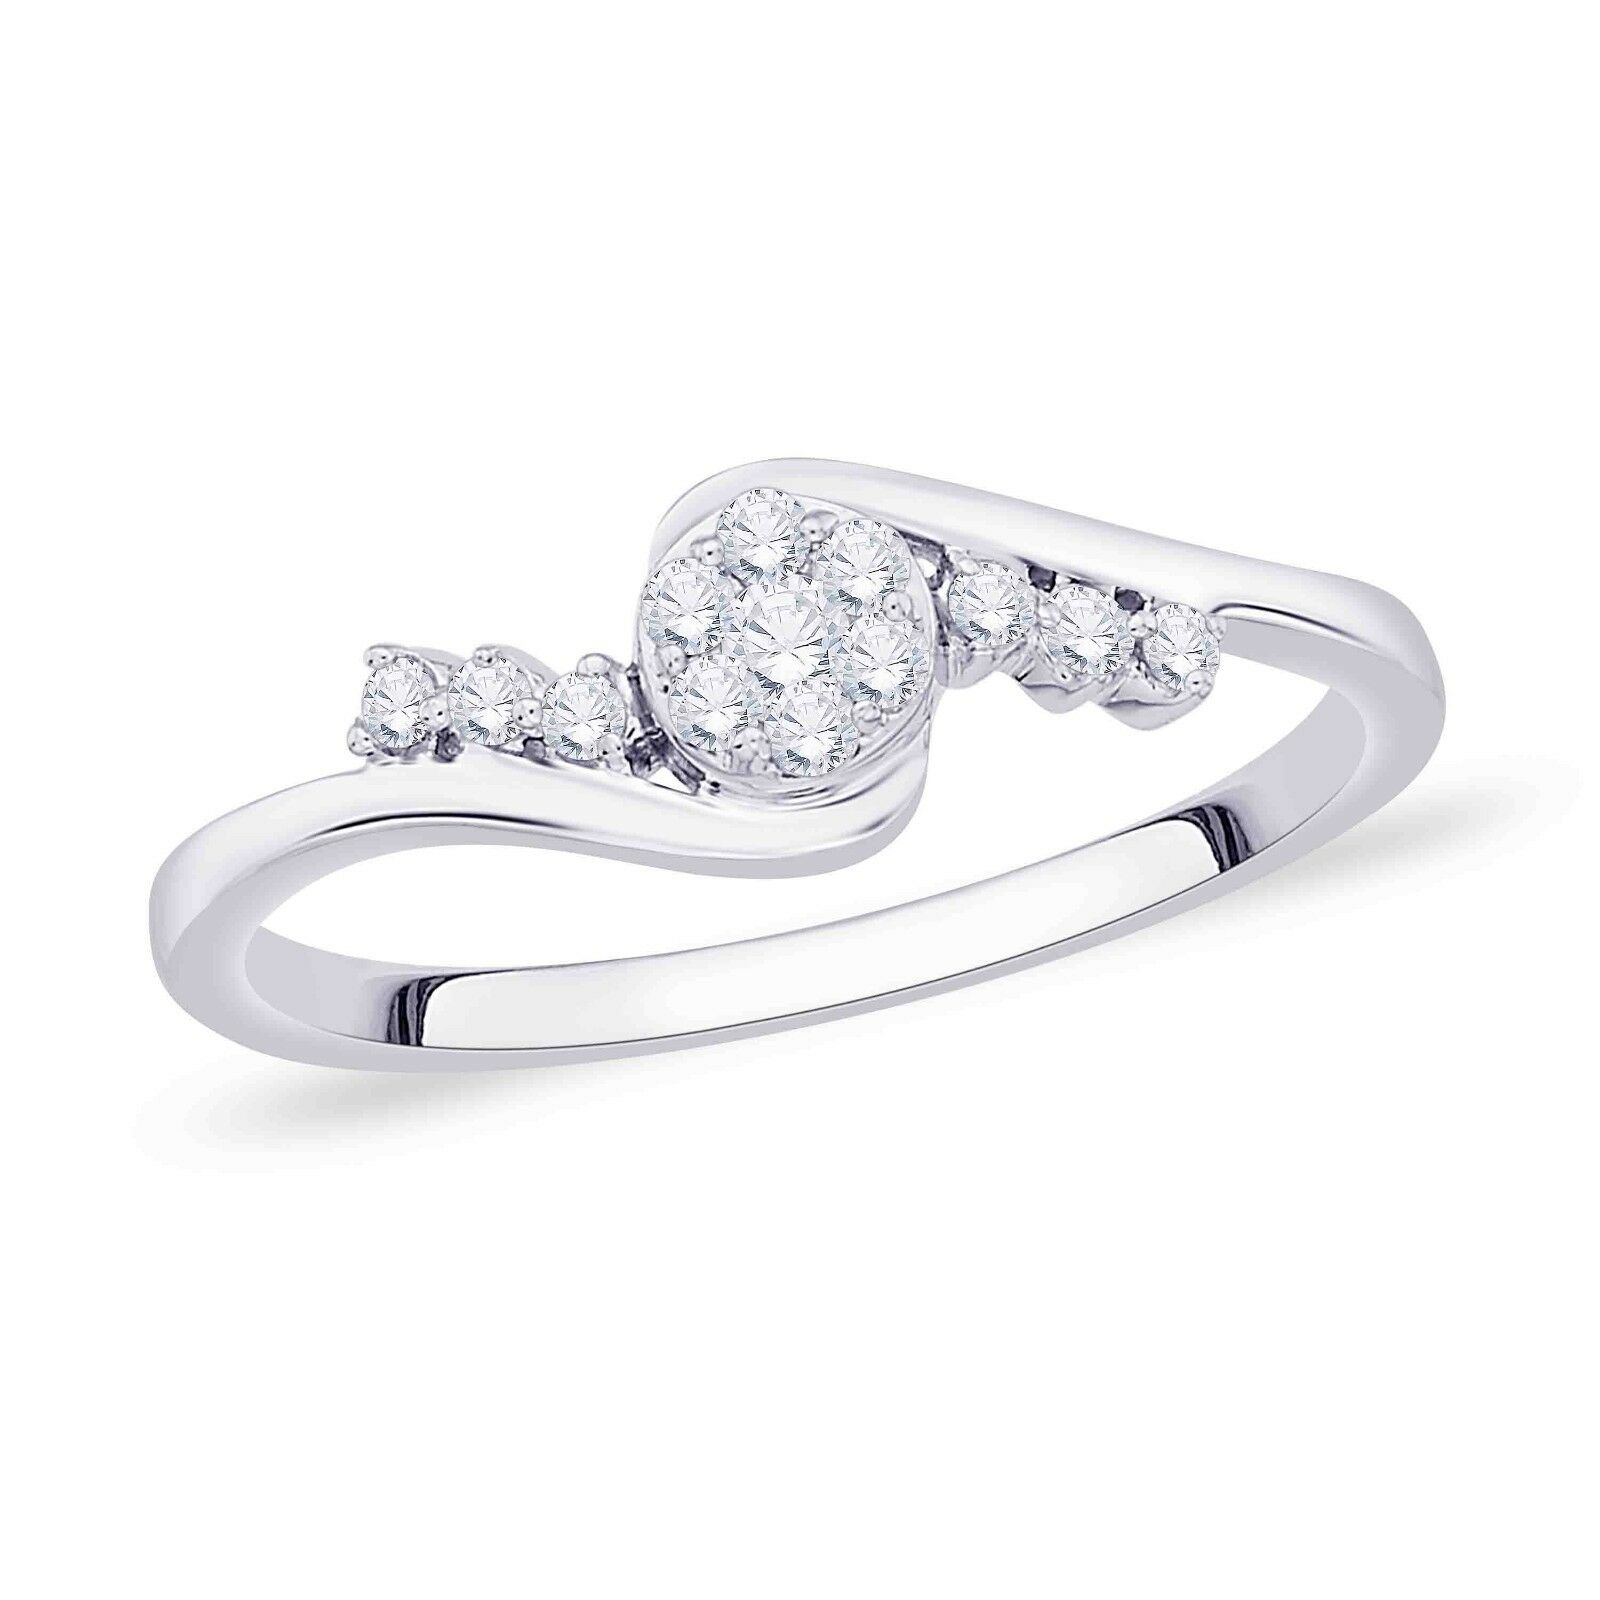 18KT White gold Diamond Studded Ring 0.18 Cts